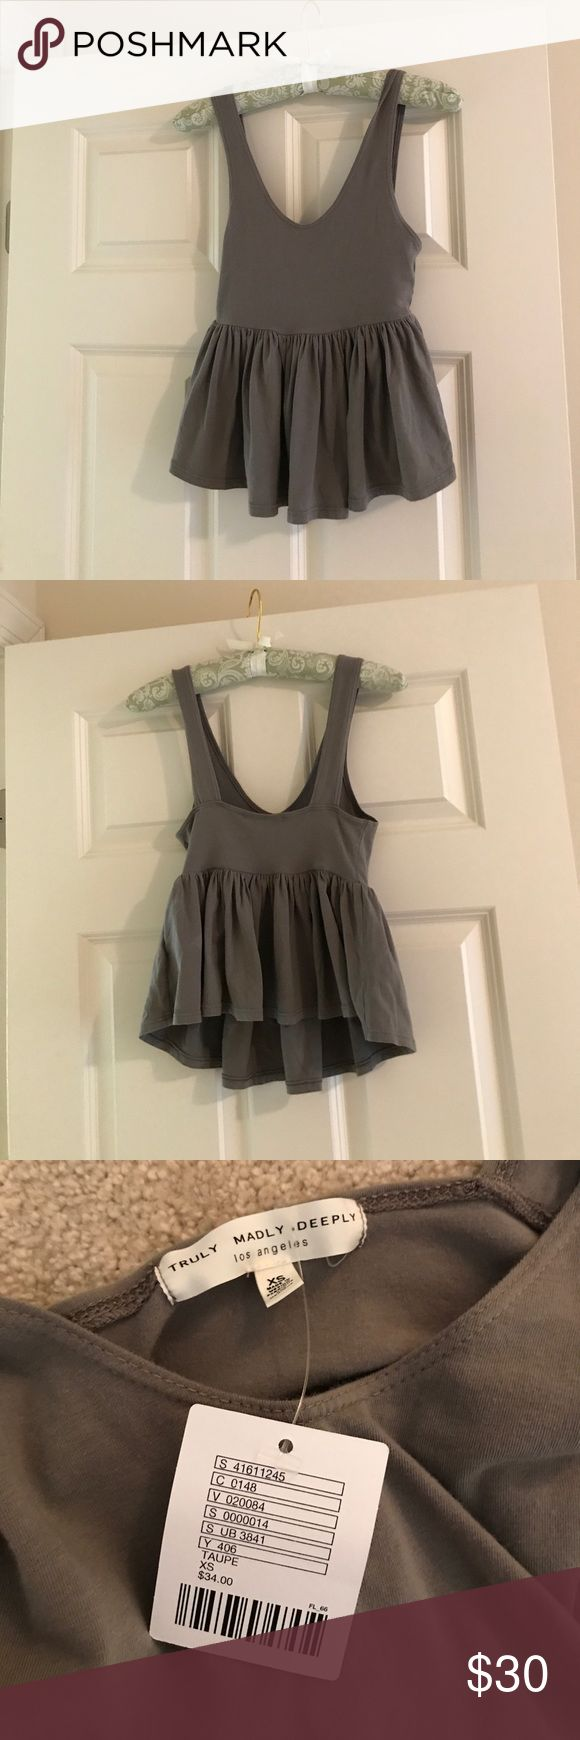 urban outfitters peplum olive colored tank New with tags! Never been worn. Super cute peplum tank great for summer. Urban Outfitters Tops